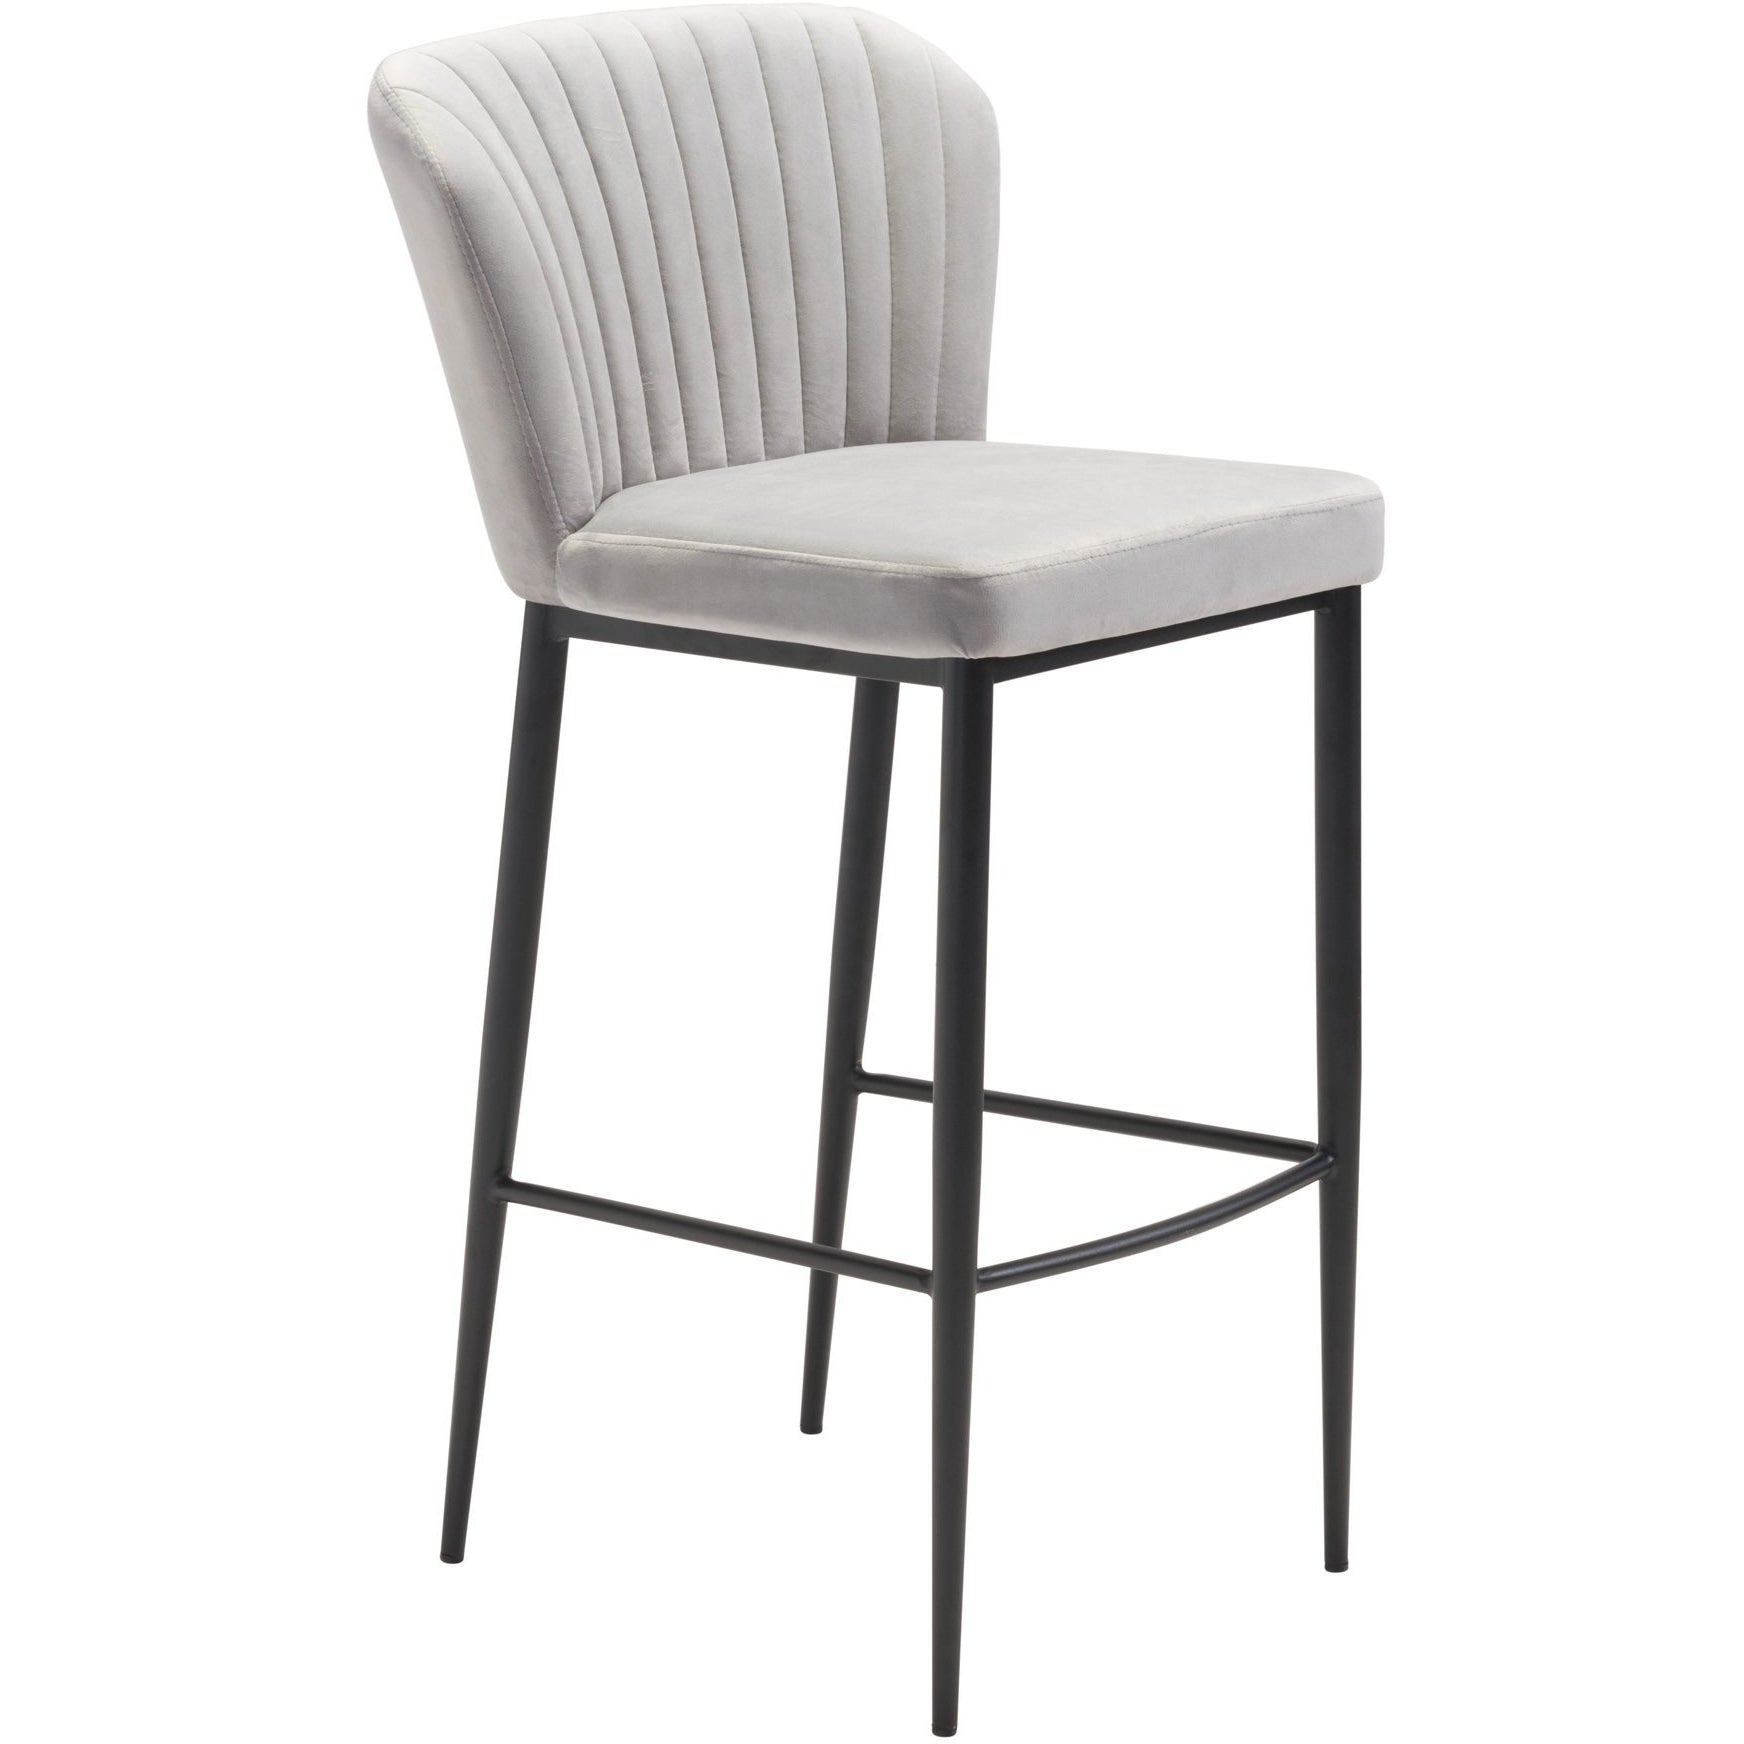 Groovy Gray Velvet Romo Bar Stool With Black Stainless Steel Legs Cjindustries Chair Design For Home Cjindustriesco